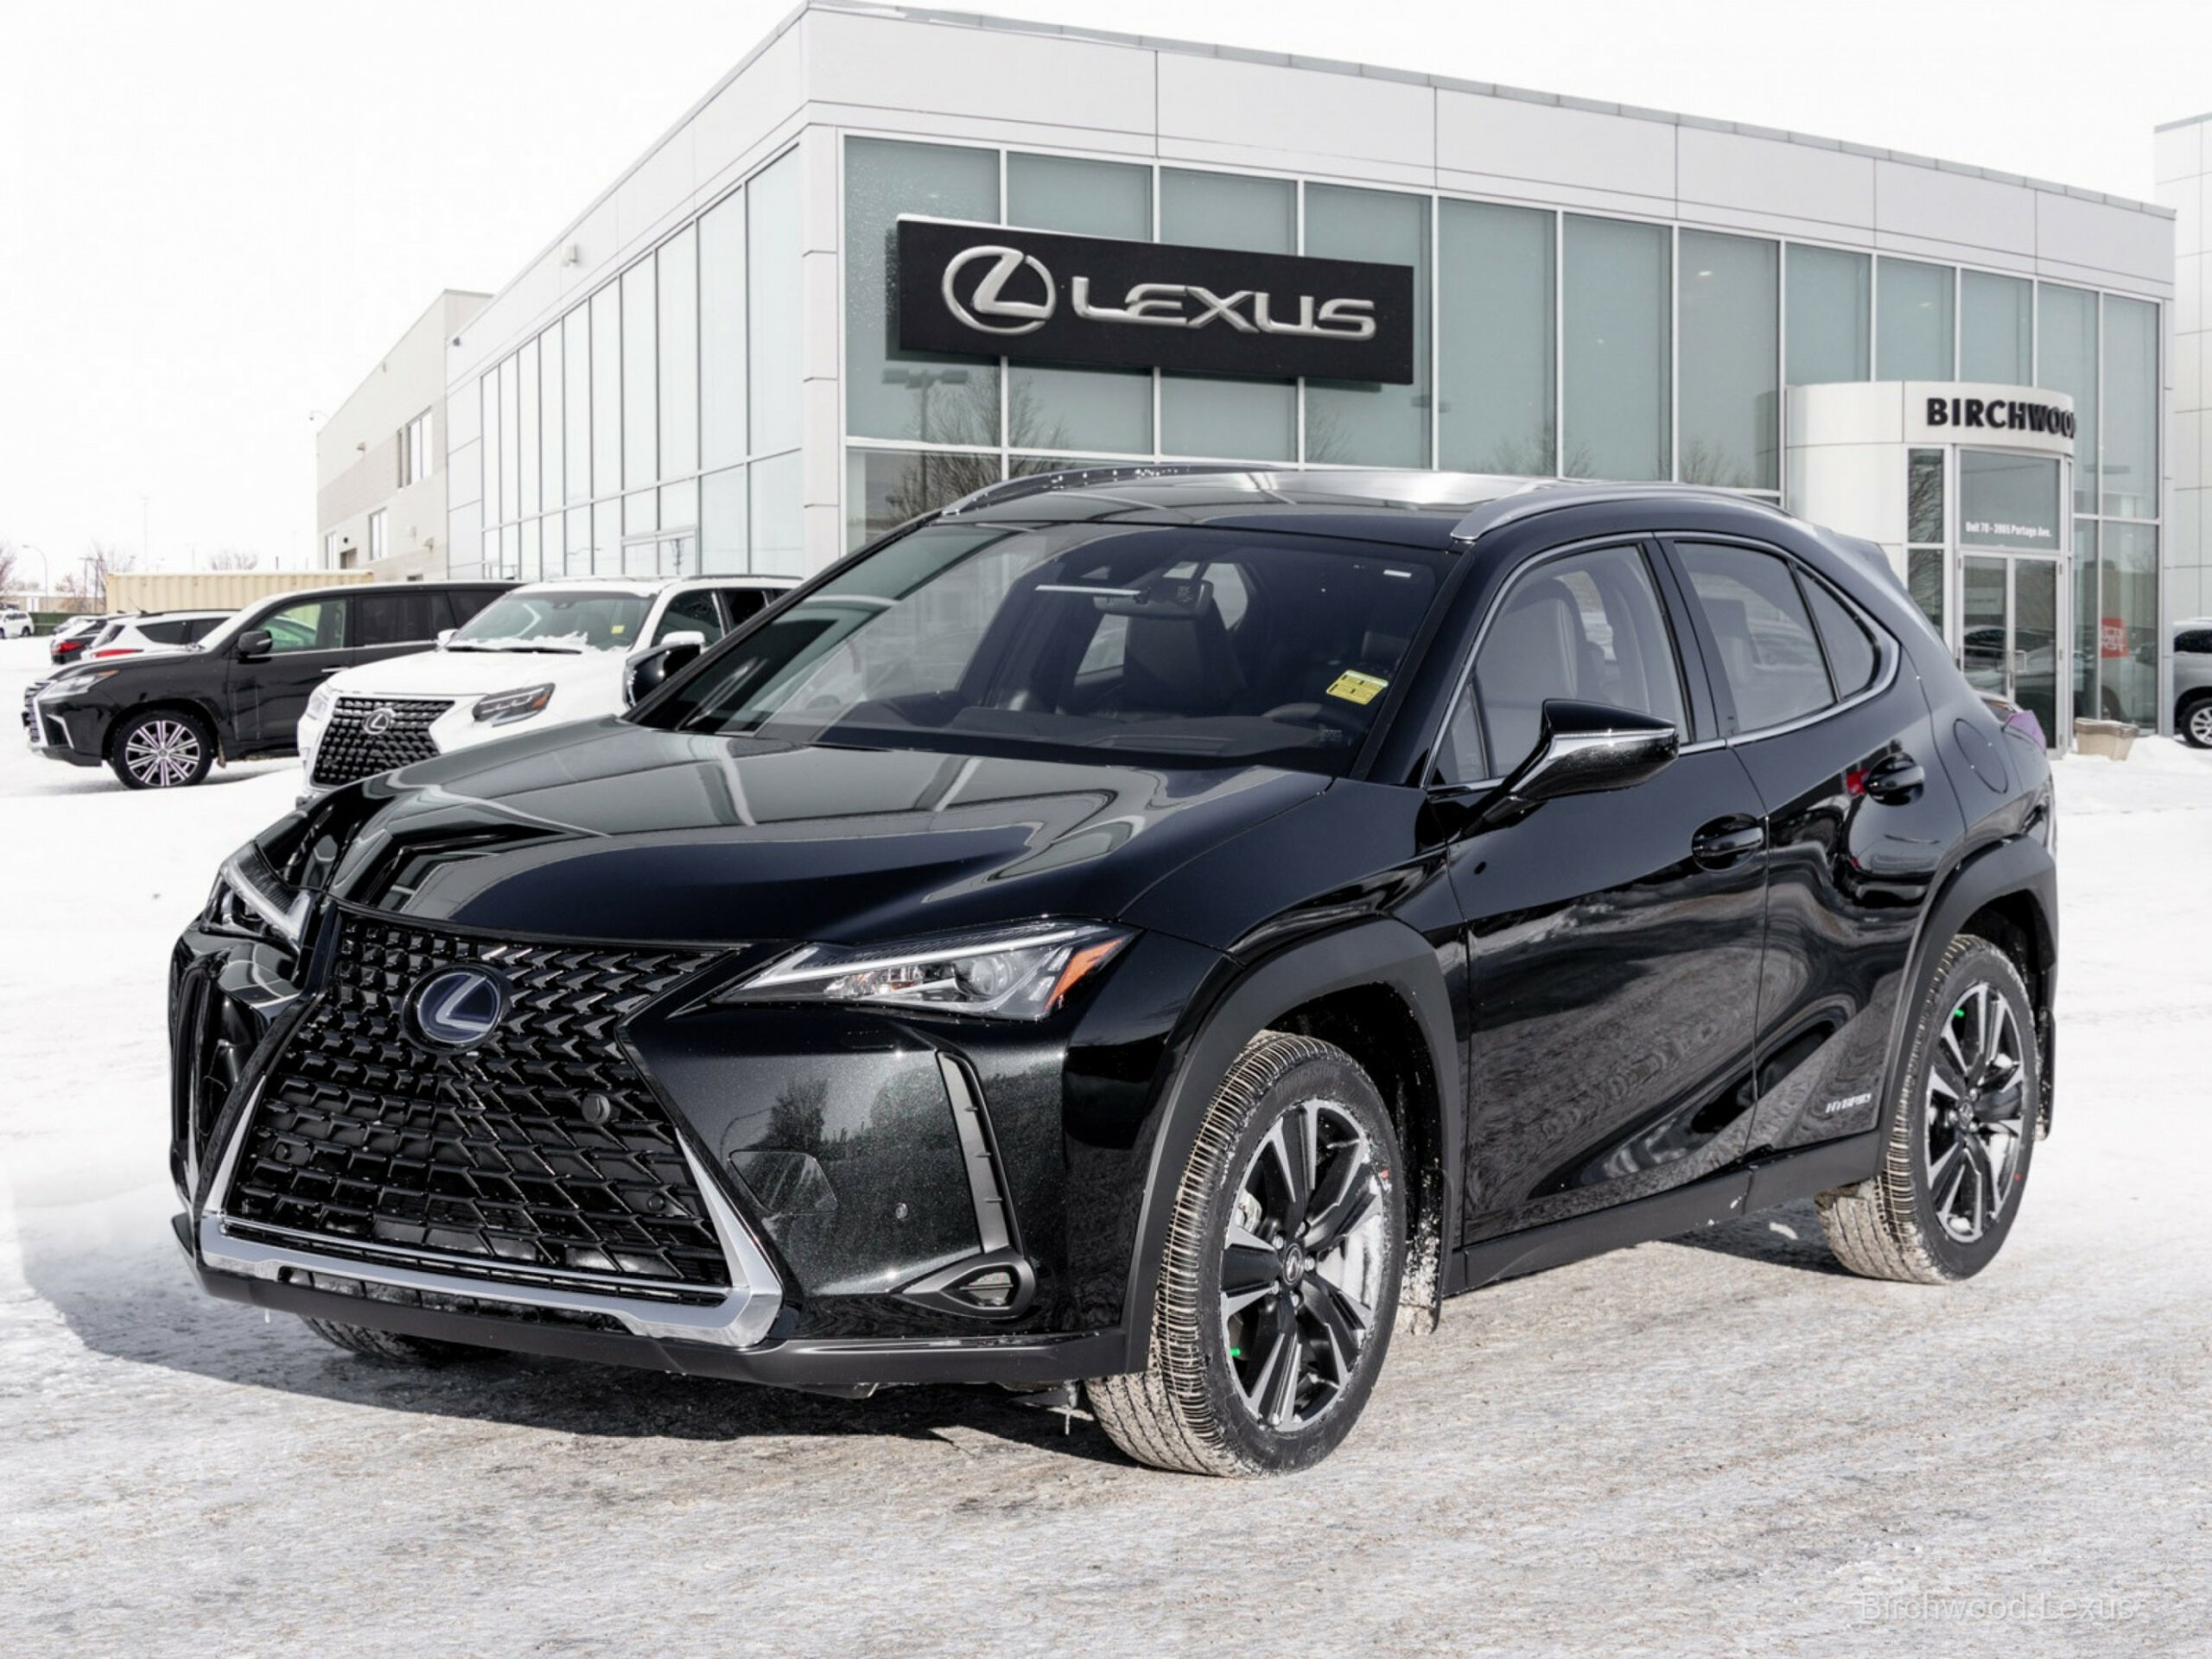 8 Lexus UX 8h Luxury, stock no